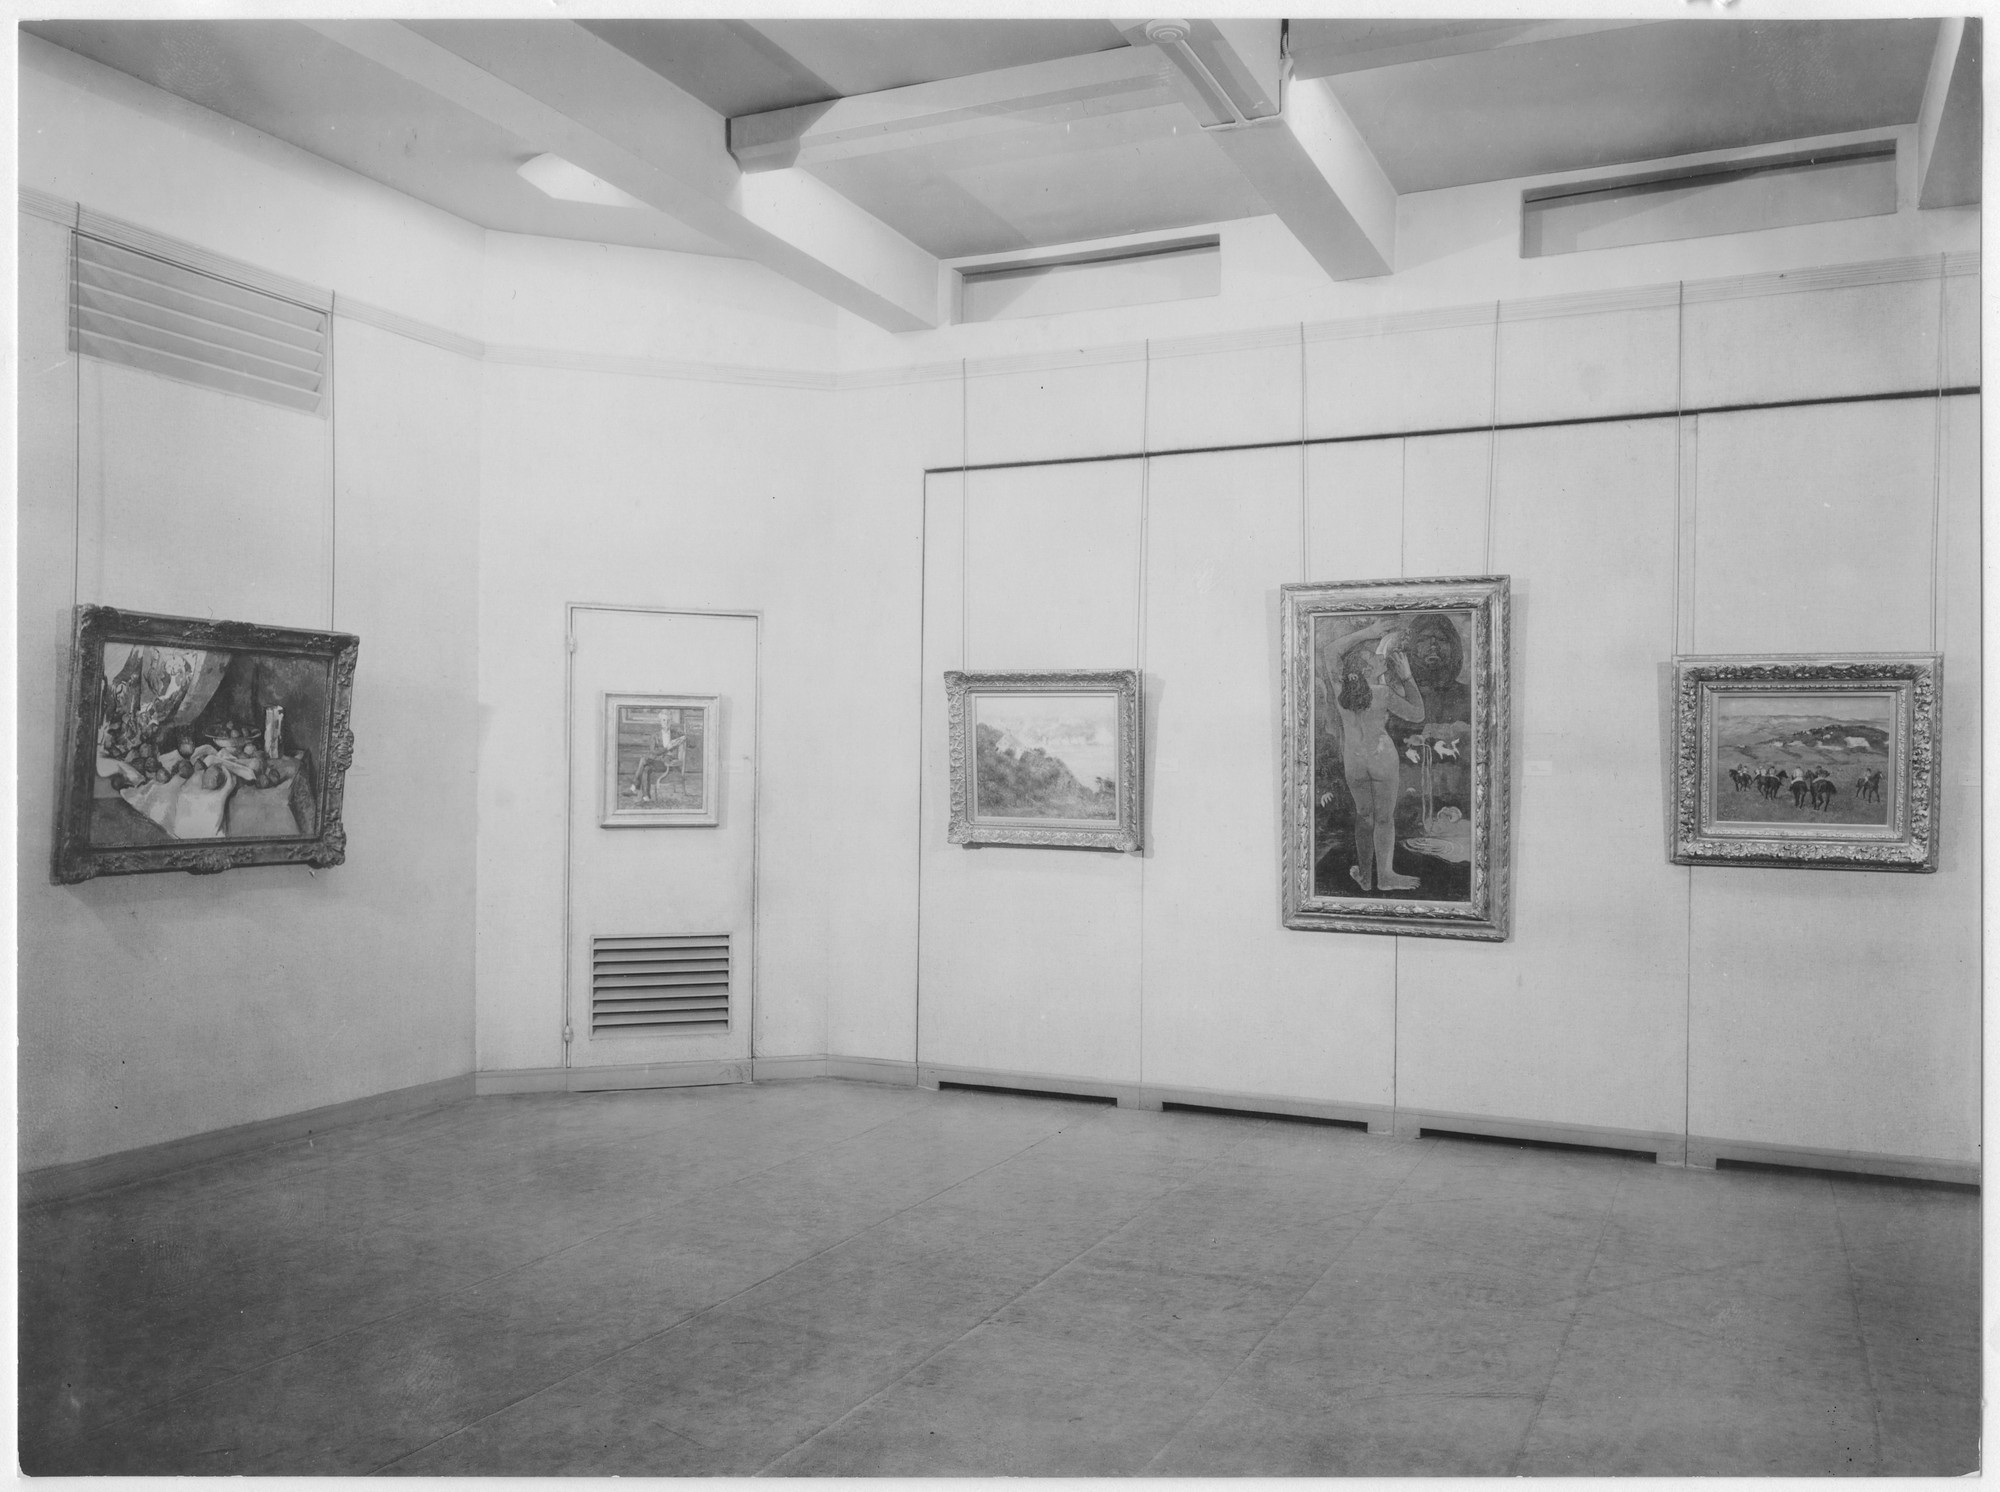 "Installation view of the exhibition, ""Memorial Exhibition: The Collection of the Late Lillie P. Bliss."" May 17, 1931–October 6, 1931. Photographic Archive. The Museum of Modern Art Archives, New York. IN12.1. Photograph by Peter A. Juley."